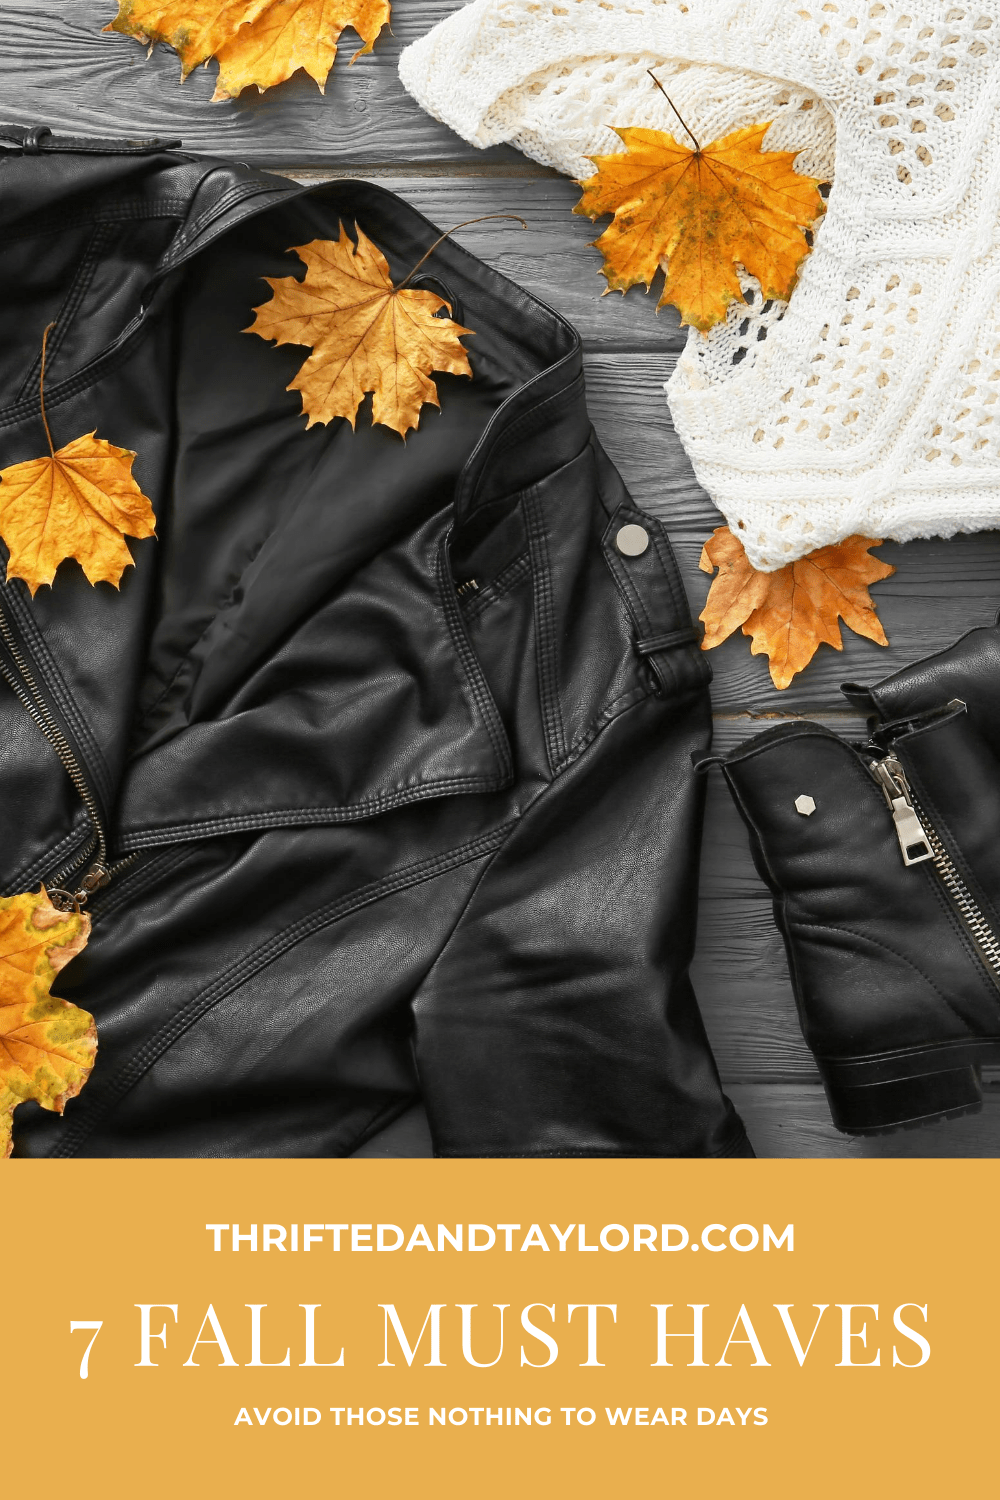 7 Fall Must Haves To Avoid Those Nothing To Wear Days